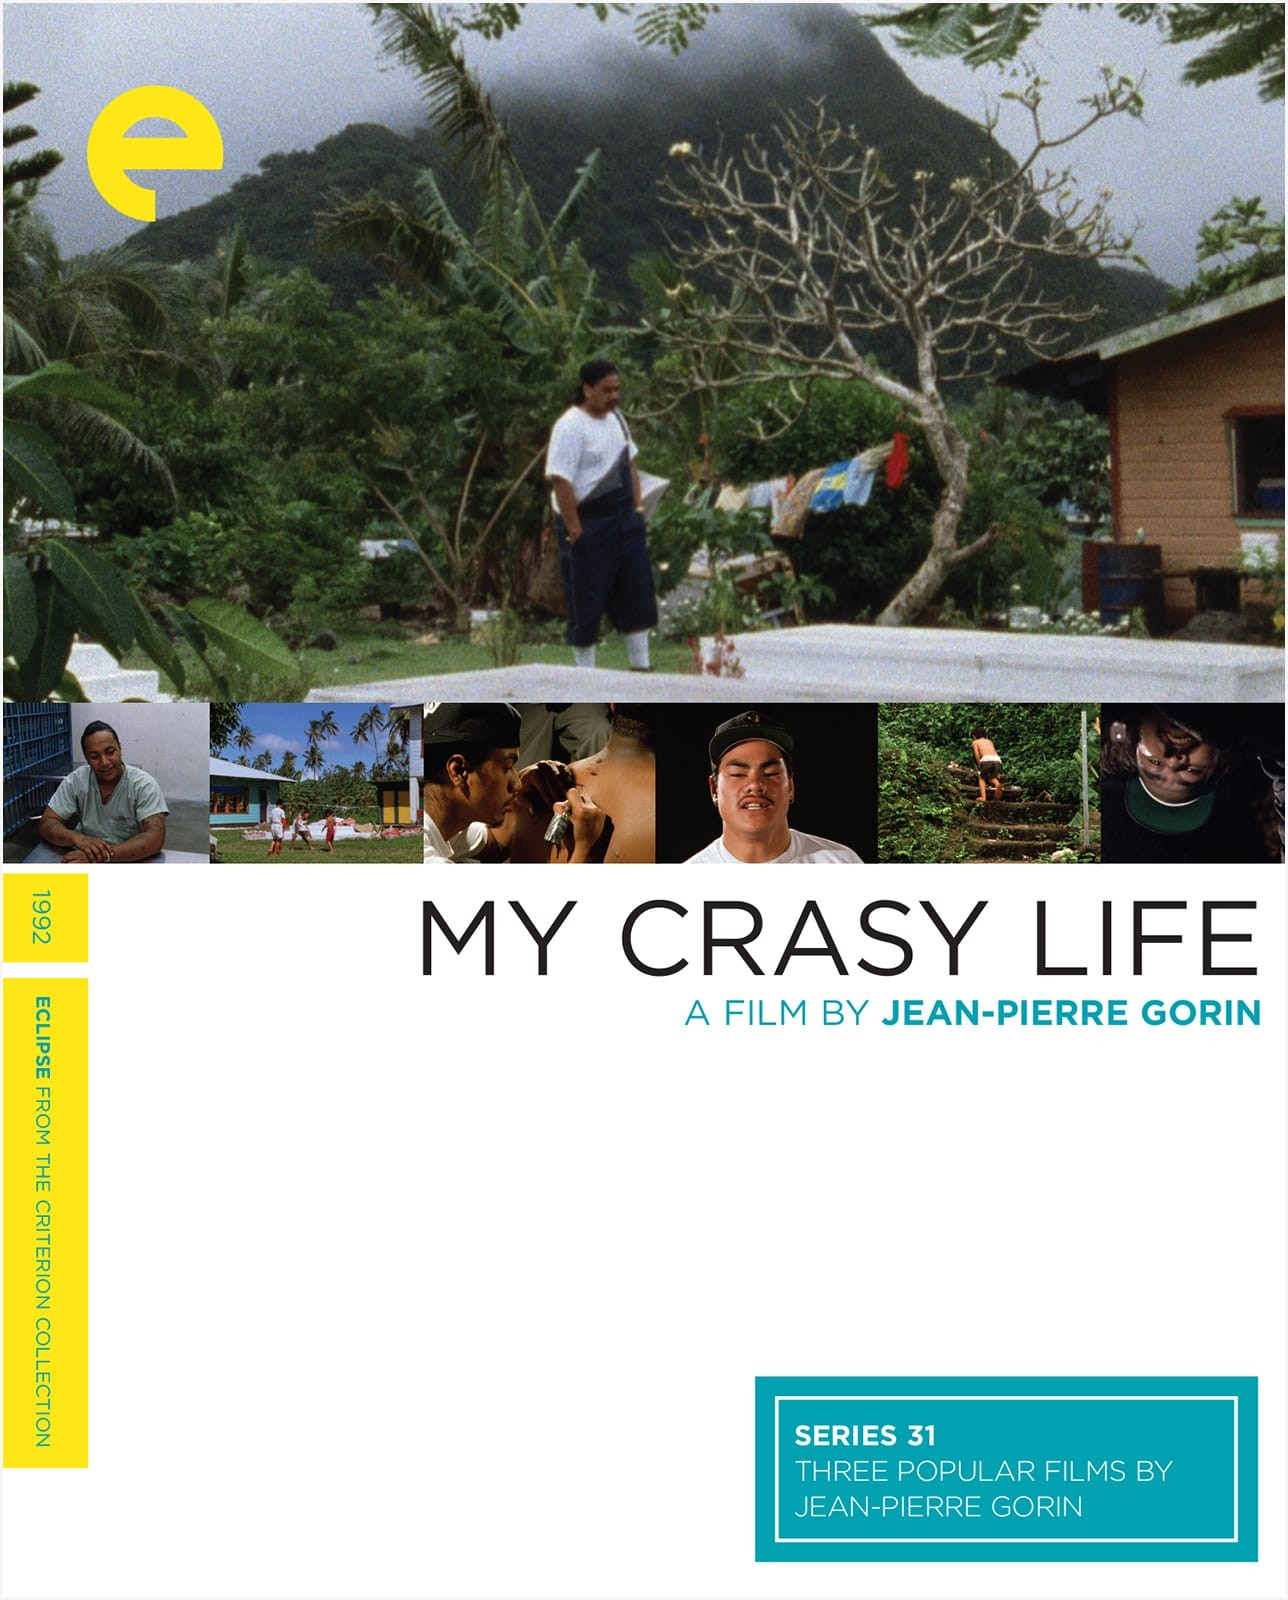 My Crasy Life (1992) | The Criterion Collection